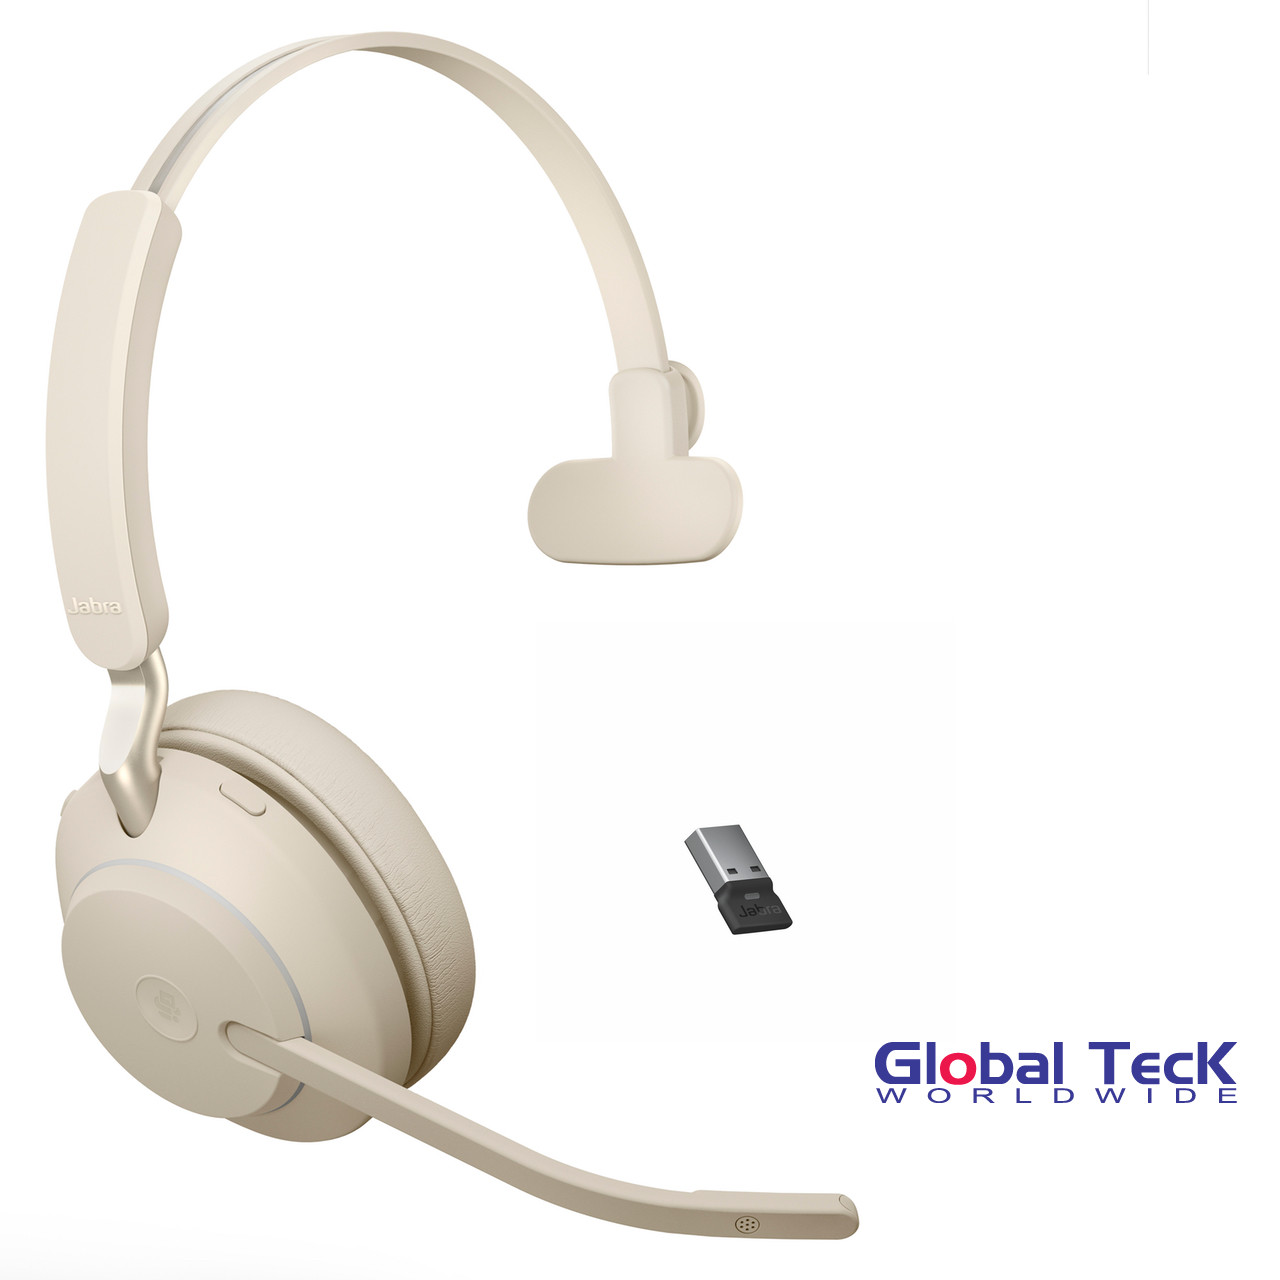 Jabra Evolve2 65 Mono Wireless Headset Beige Ms Version Includes Usb Bluetooth Dongle Compatible With Windows Pc Mac Smartphone Streaming Music Skype Ip Communications 26599 899 998